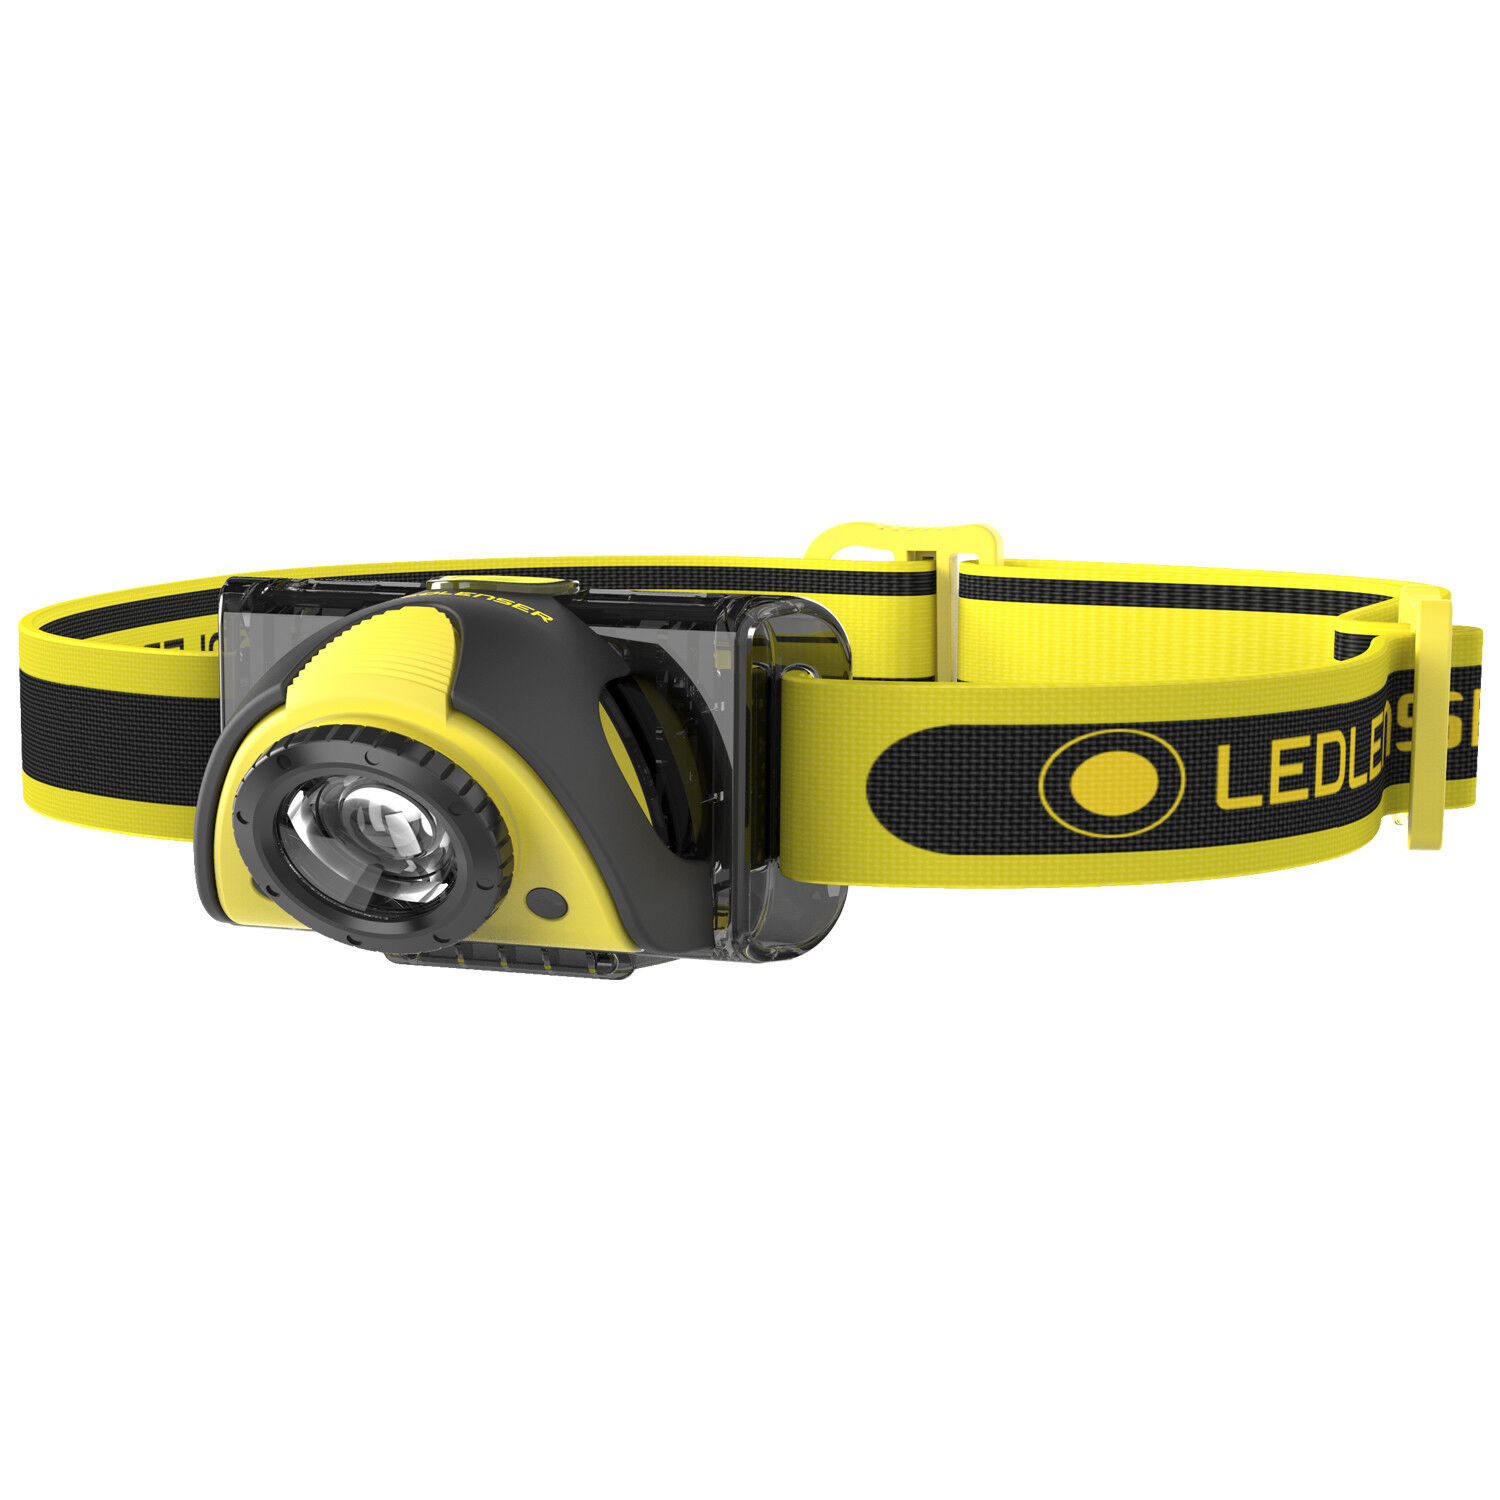 LED Lenser iSE03 Head Light Torch 100  Lumens  big discount prices